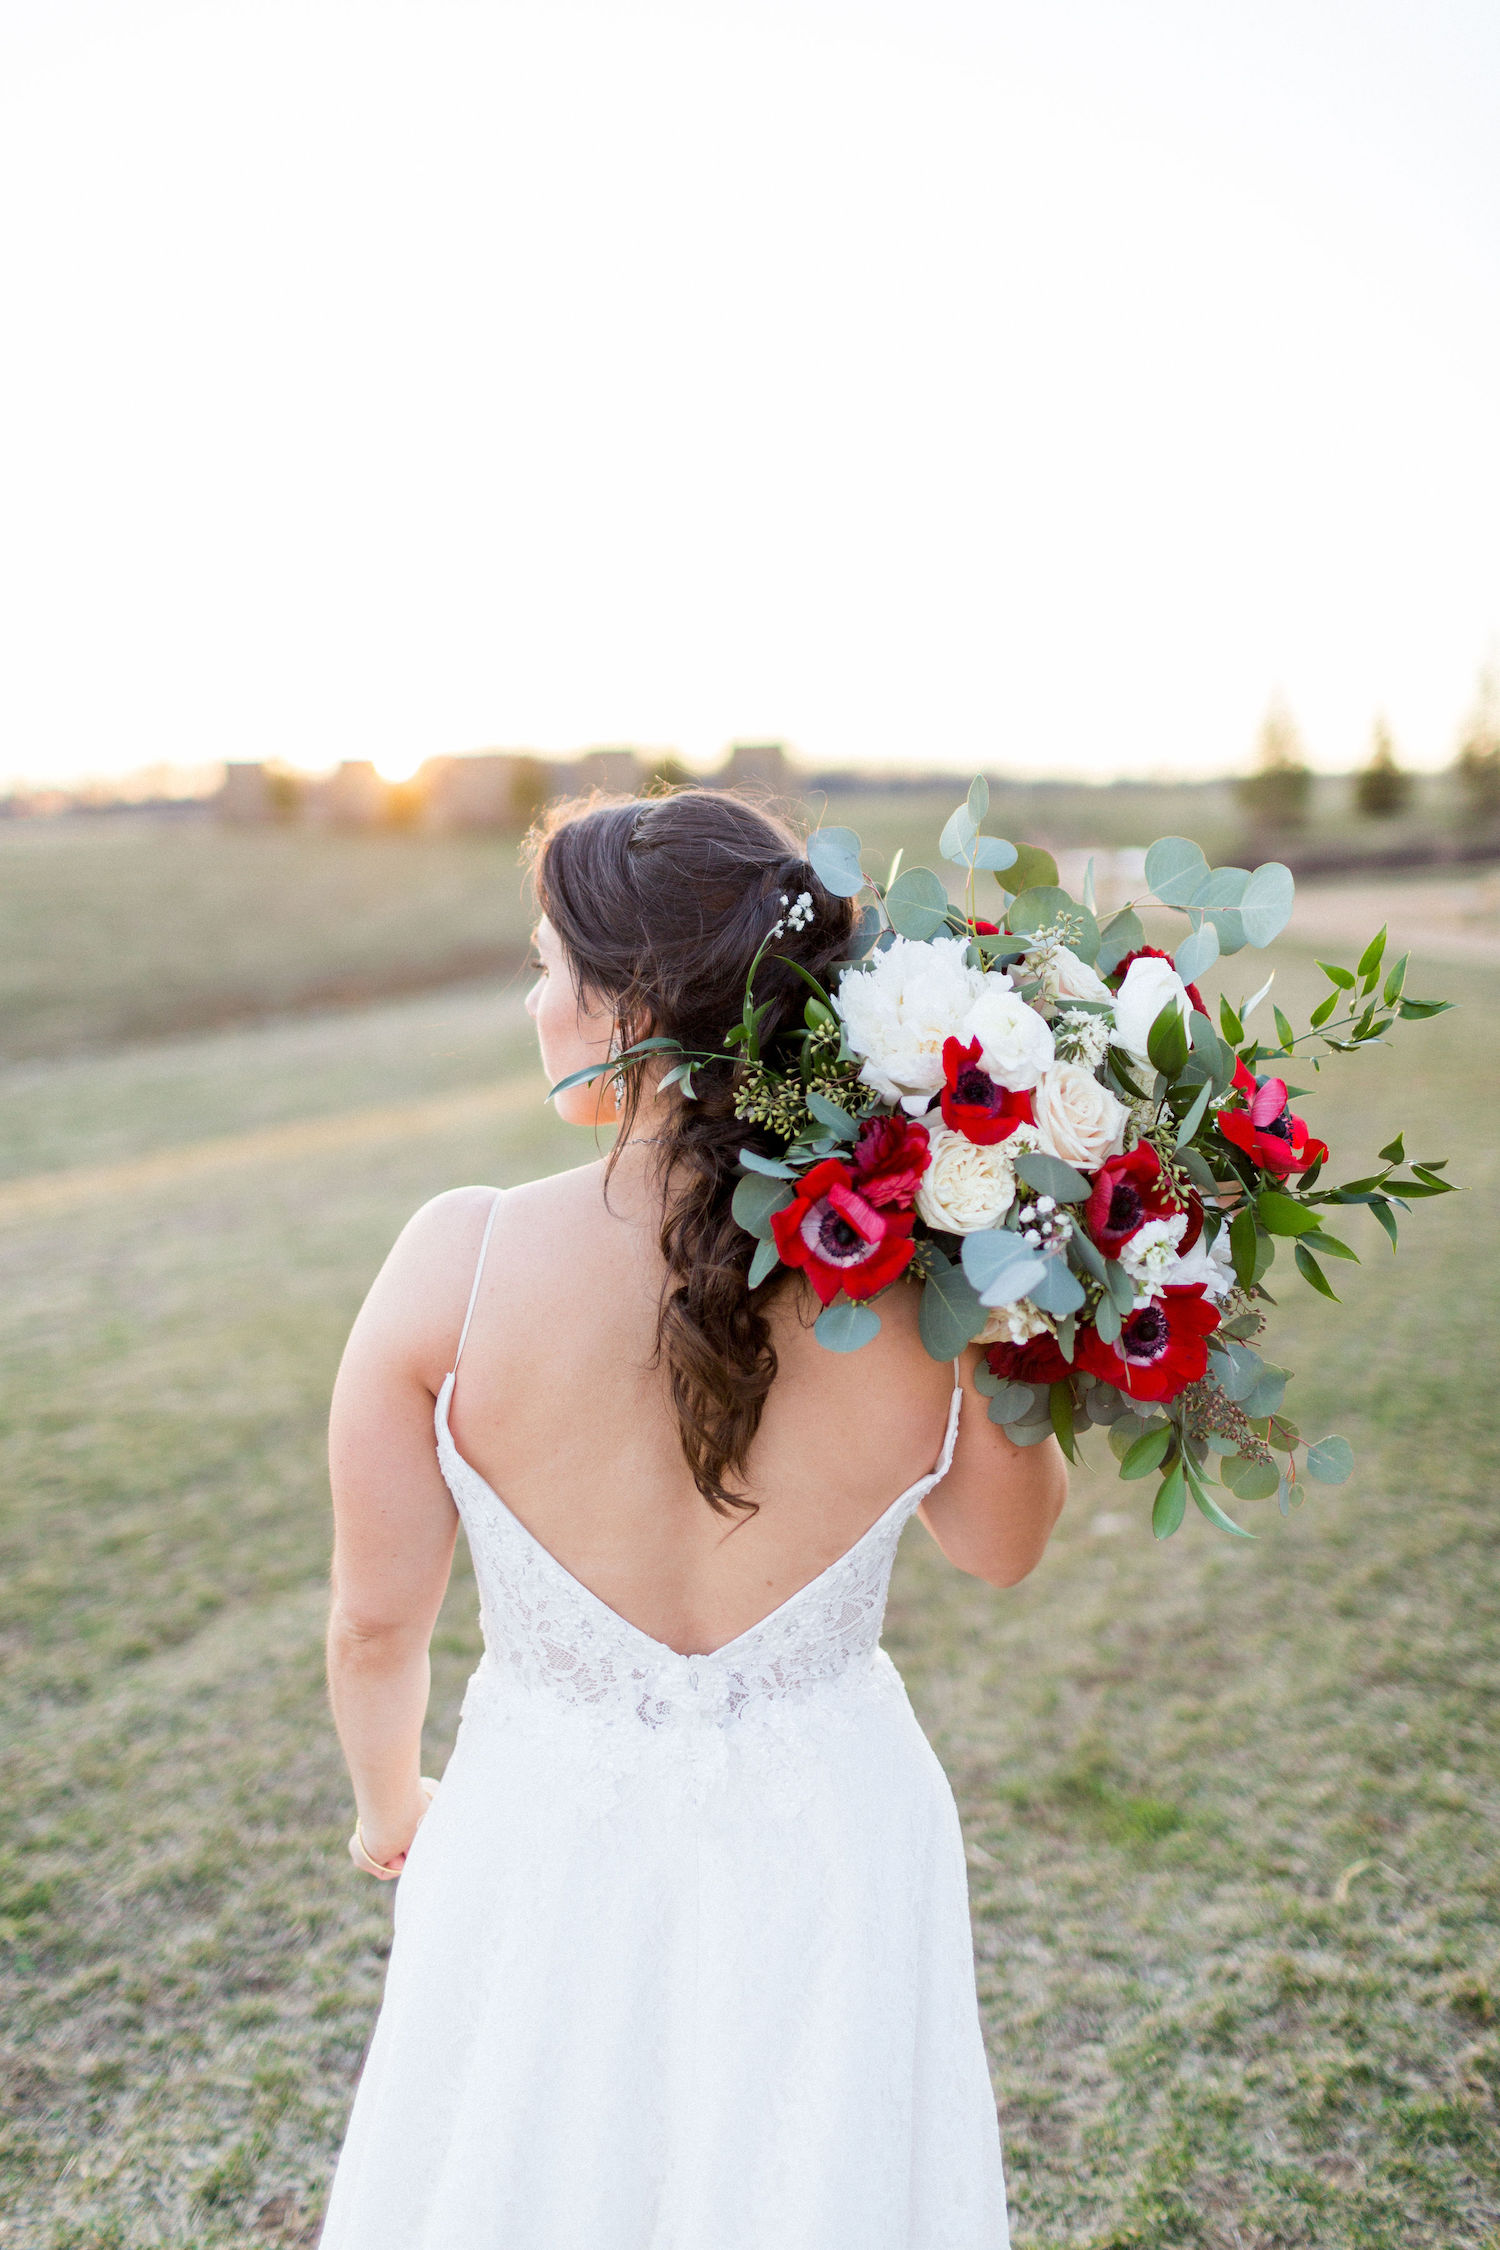 A loose bridal bouquet in white and red at Stone Tower Winery, Kir2Ben photography.